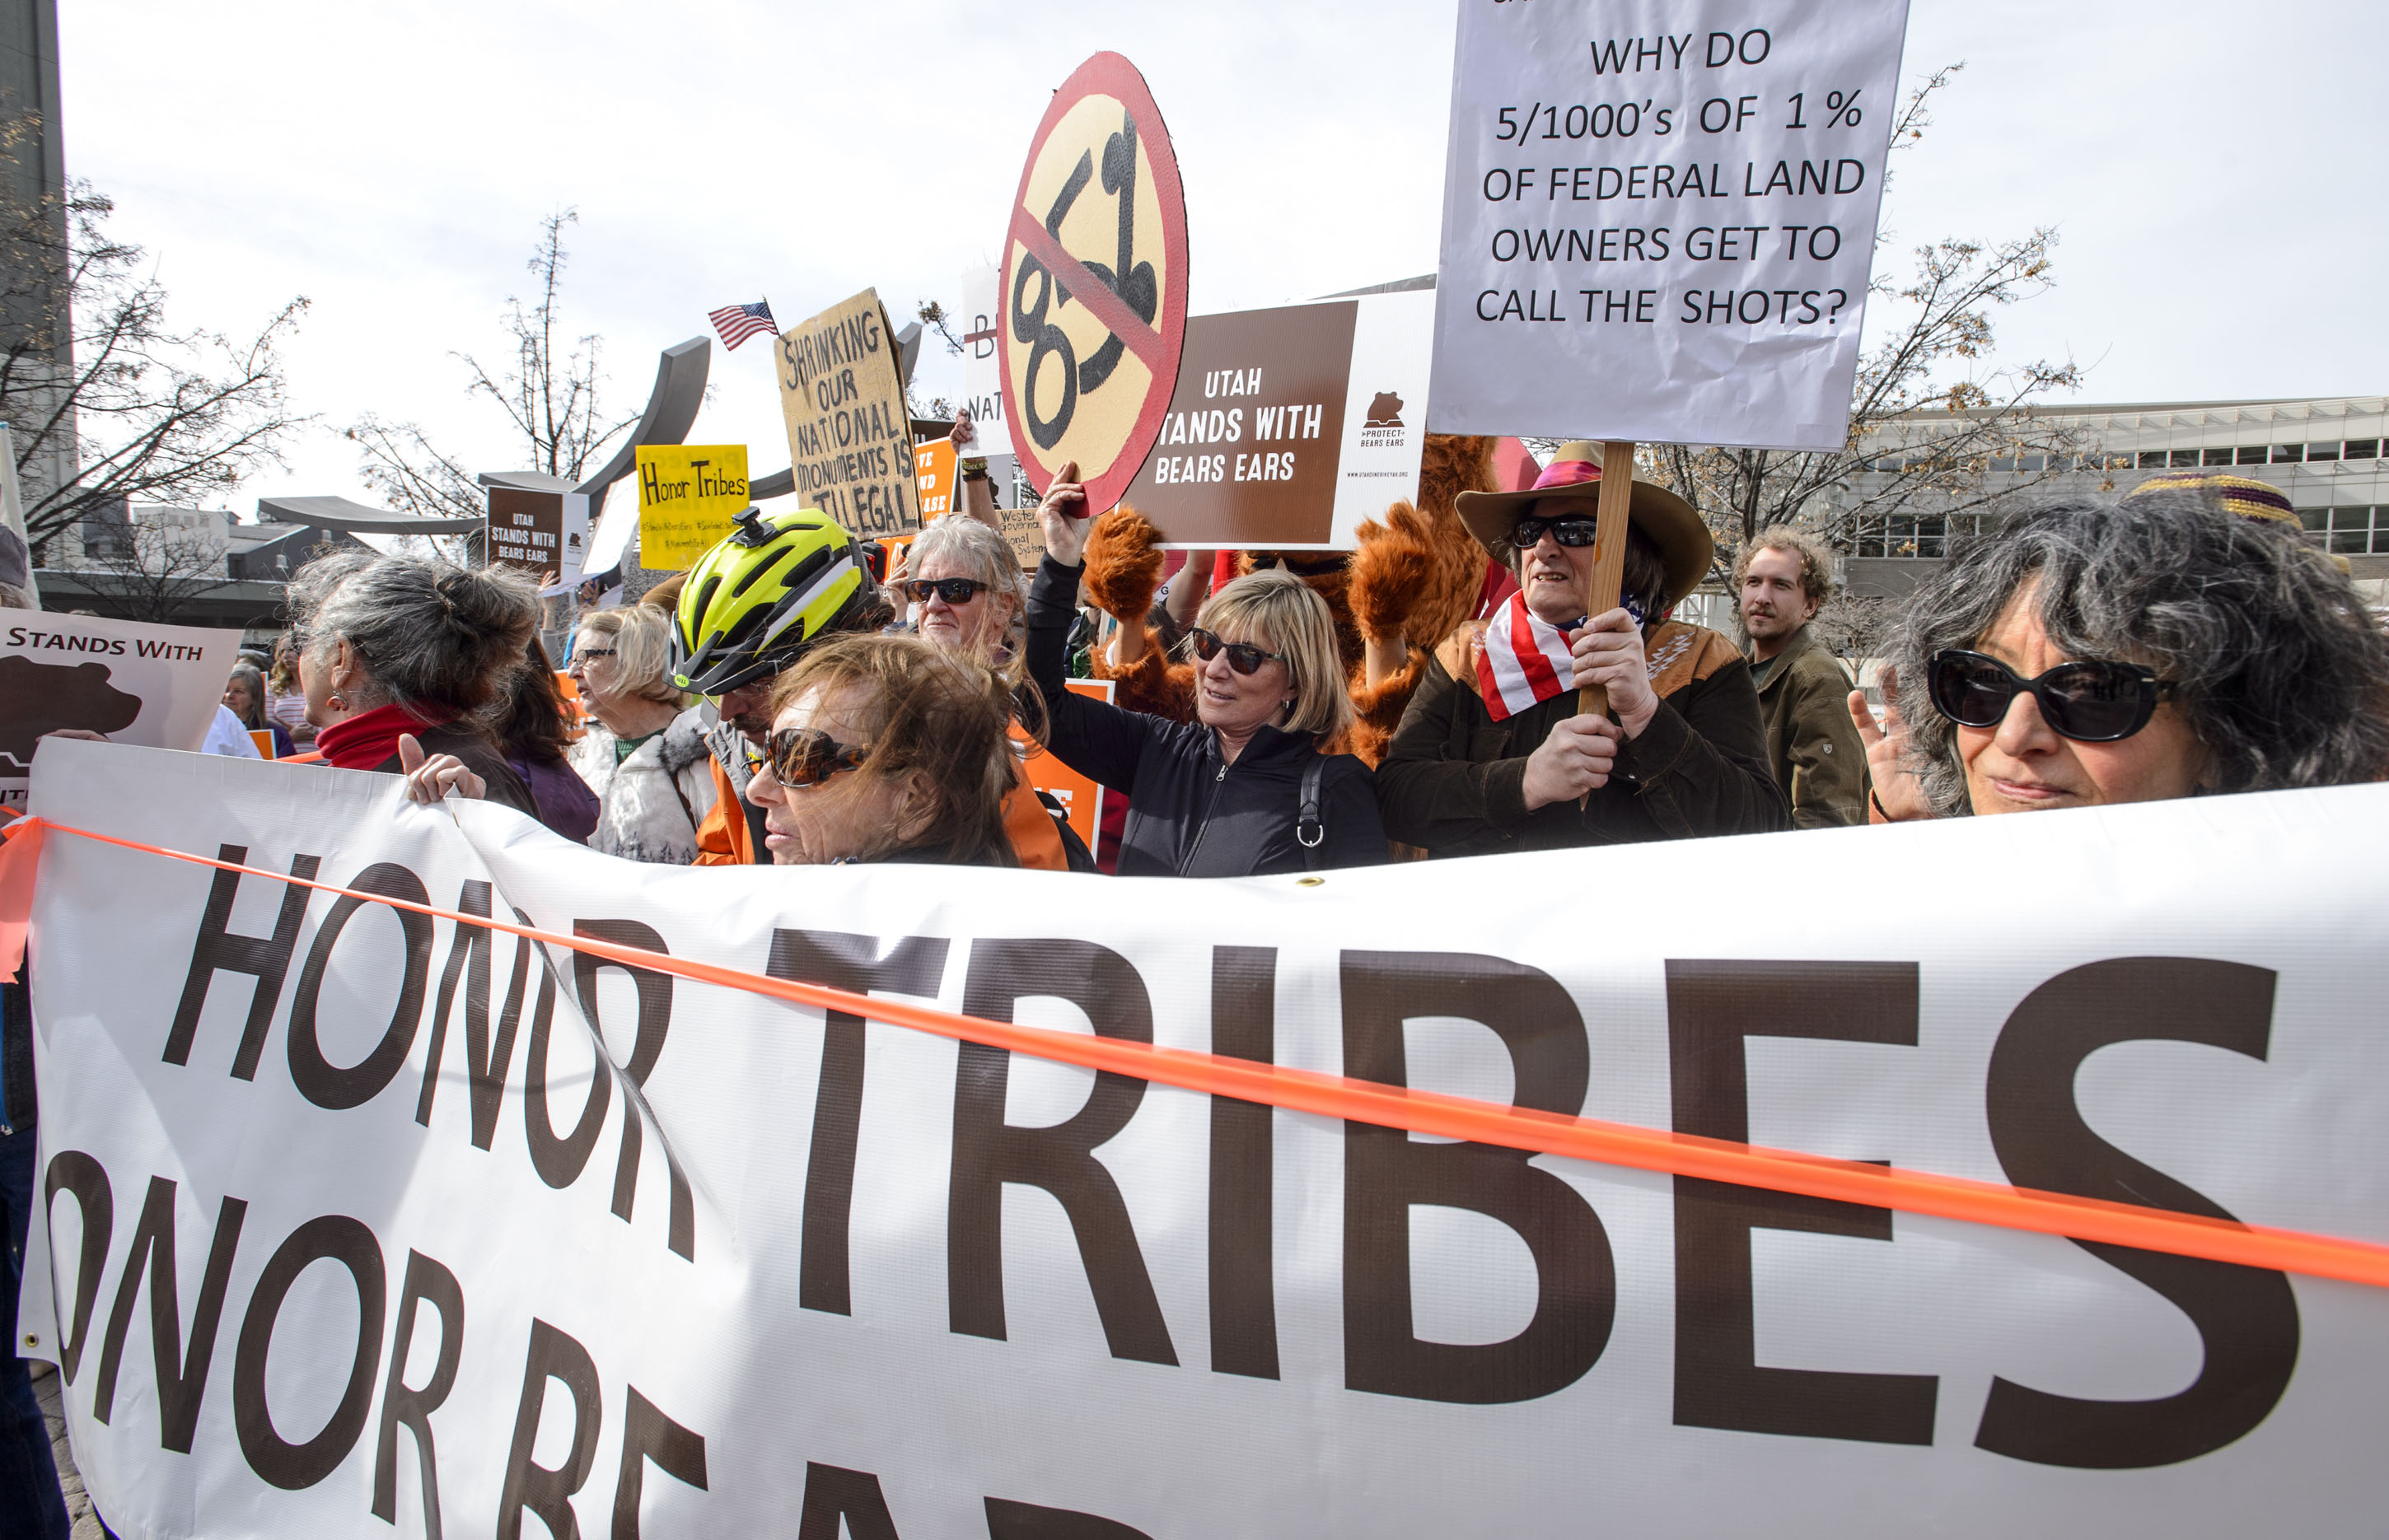 (Steve Griffin  |  The Salt Lake Tribune) Proponents of Bears Ears and Grand Staircase-Escalante national monuments rally outside the Salt Palace Convention Center in Salt Lake City on Friday, Feb. 9, 2018. SUWA organized the rally outside the Salt Palace Convention Center where U.S. Secretary of the Interior Ryan Zinke was scheduled to speak during the Western Hunting and Conservation Expo.